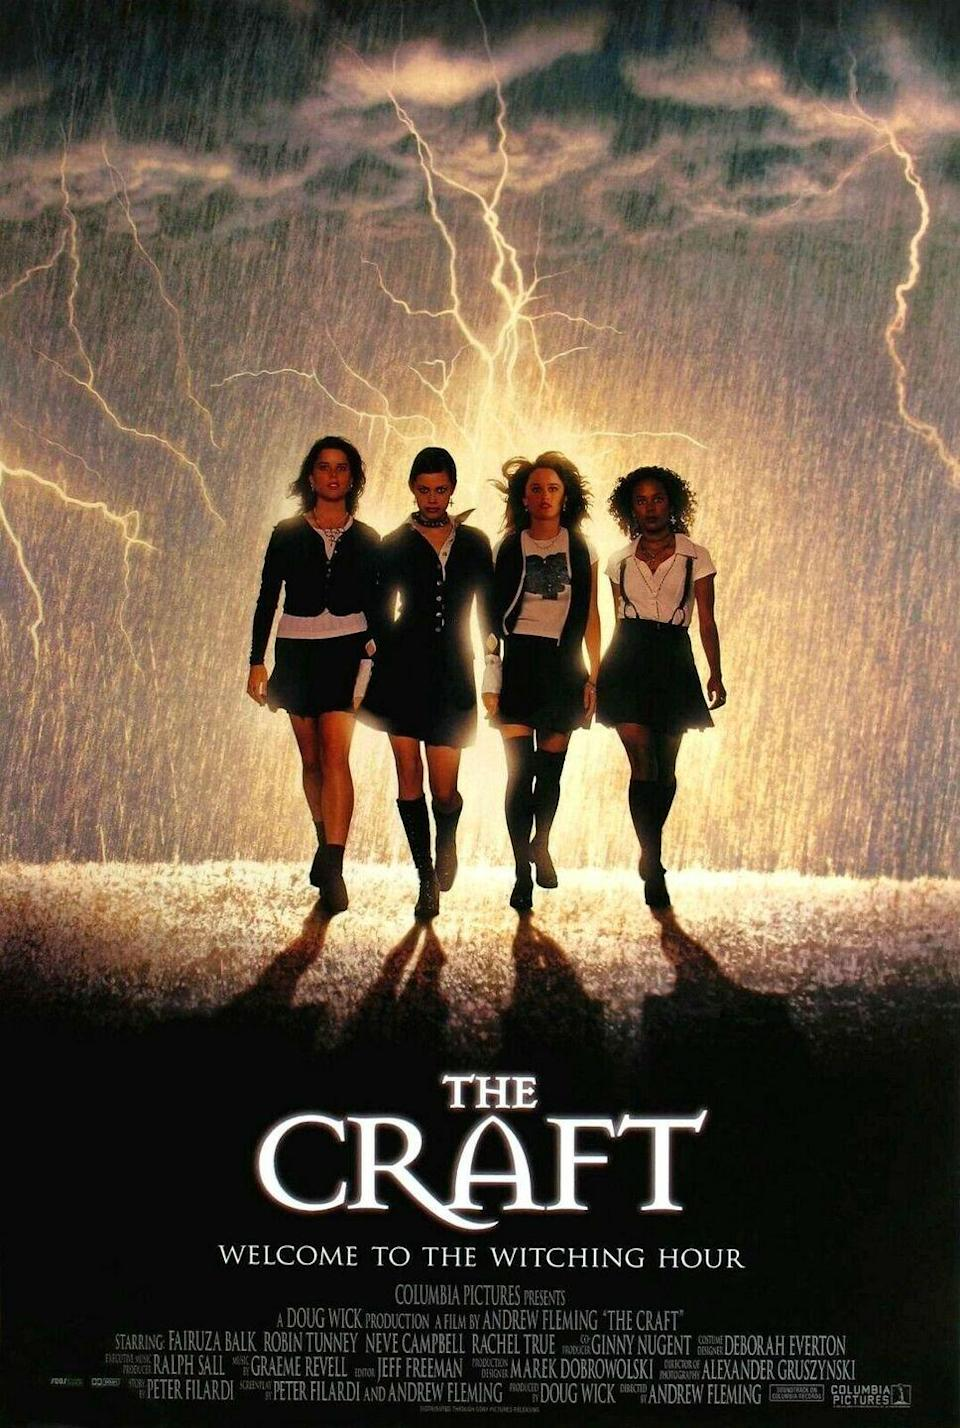 """<p>Pretty much the spooky version of <em>Mean Girls</em>, <em>The Craft </em>follows Sarah as she enrolls in a new prep school and falls in with three girls who practice witchcraft. Soon, they begin conjuring up various spells and curses against those who even slightly anger them and, obviously, chaos ensues. </p><p><a class=""""link rapid-noclick-resp"""" href=""""https://www.amazon.com/Craft-Robin-Tunney/dp/B000MQ7B0O/?tag=syn-yahoo-20&ascsubtag=%5Bartid%7C10065.g.29354714%5Bsrc%7Cyahoo-us"""" rel=""""nofollow noopener"""" target=""""_blank"""" data-ylk=""""slk:Watch Now"""">Watch Now</a></p>"""